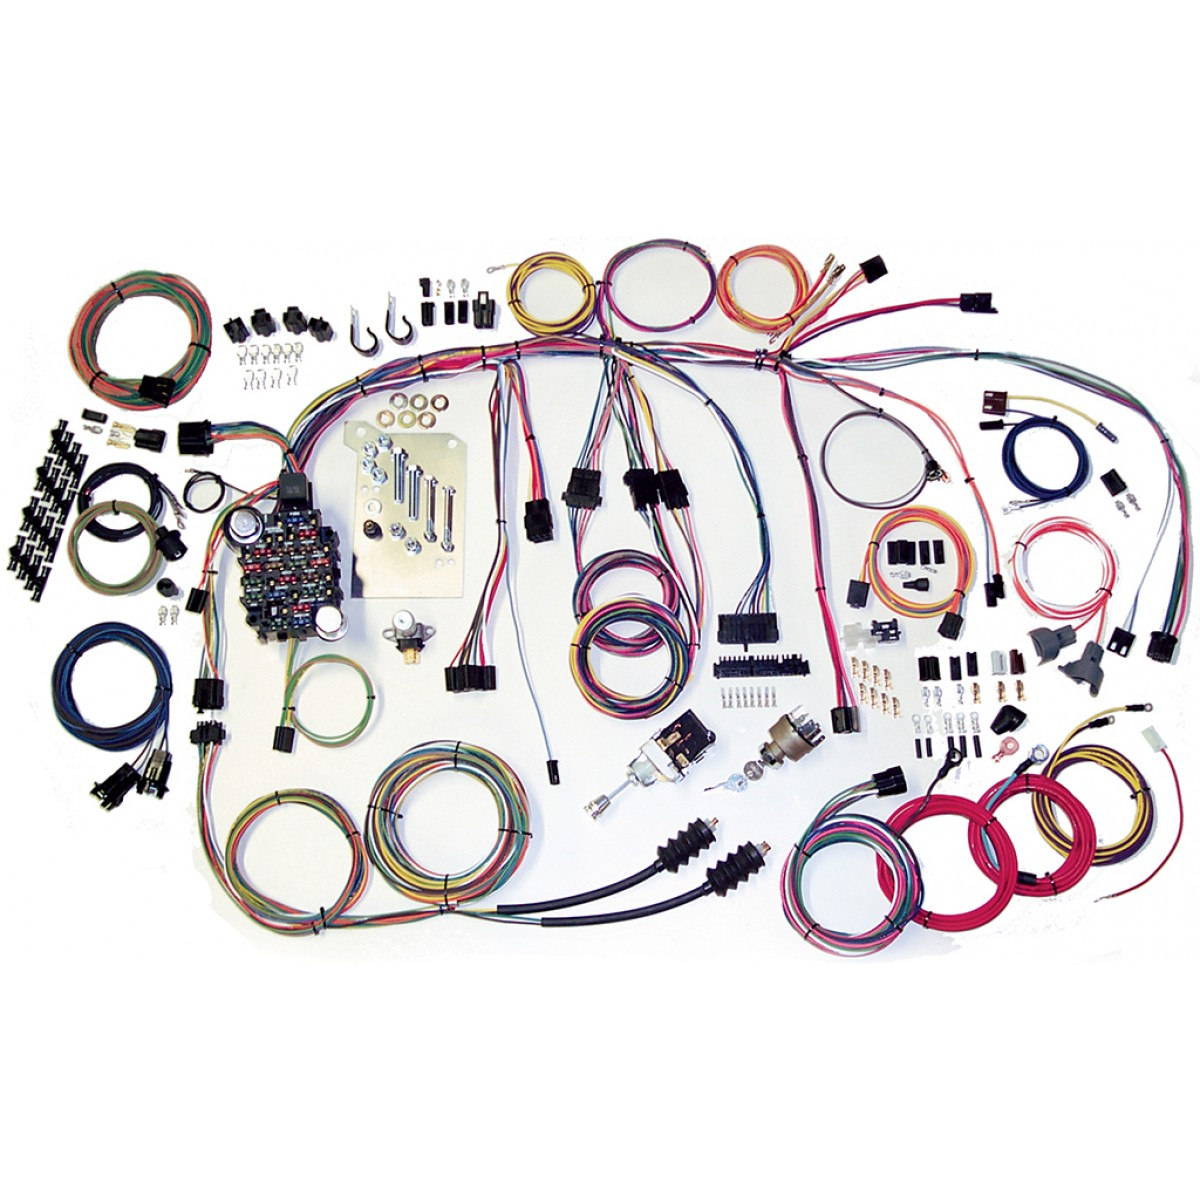 60 66 chevy truck wiring harness kit 1960 1966 chevy truck part 500560 chevy c10 c20 wiring harness chevy c10 wiring harness complete wiring harness kit 1960 1966 chevy truck wiring harness at fashall.co